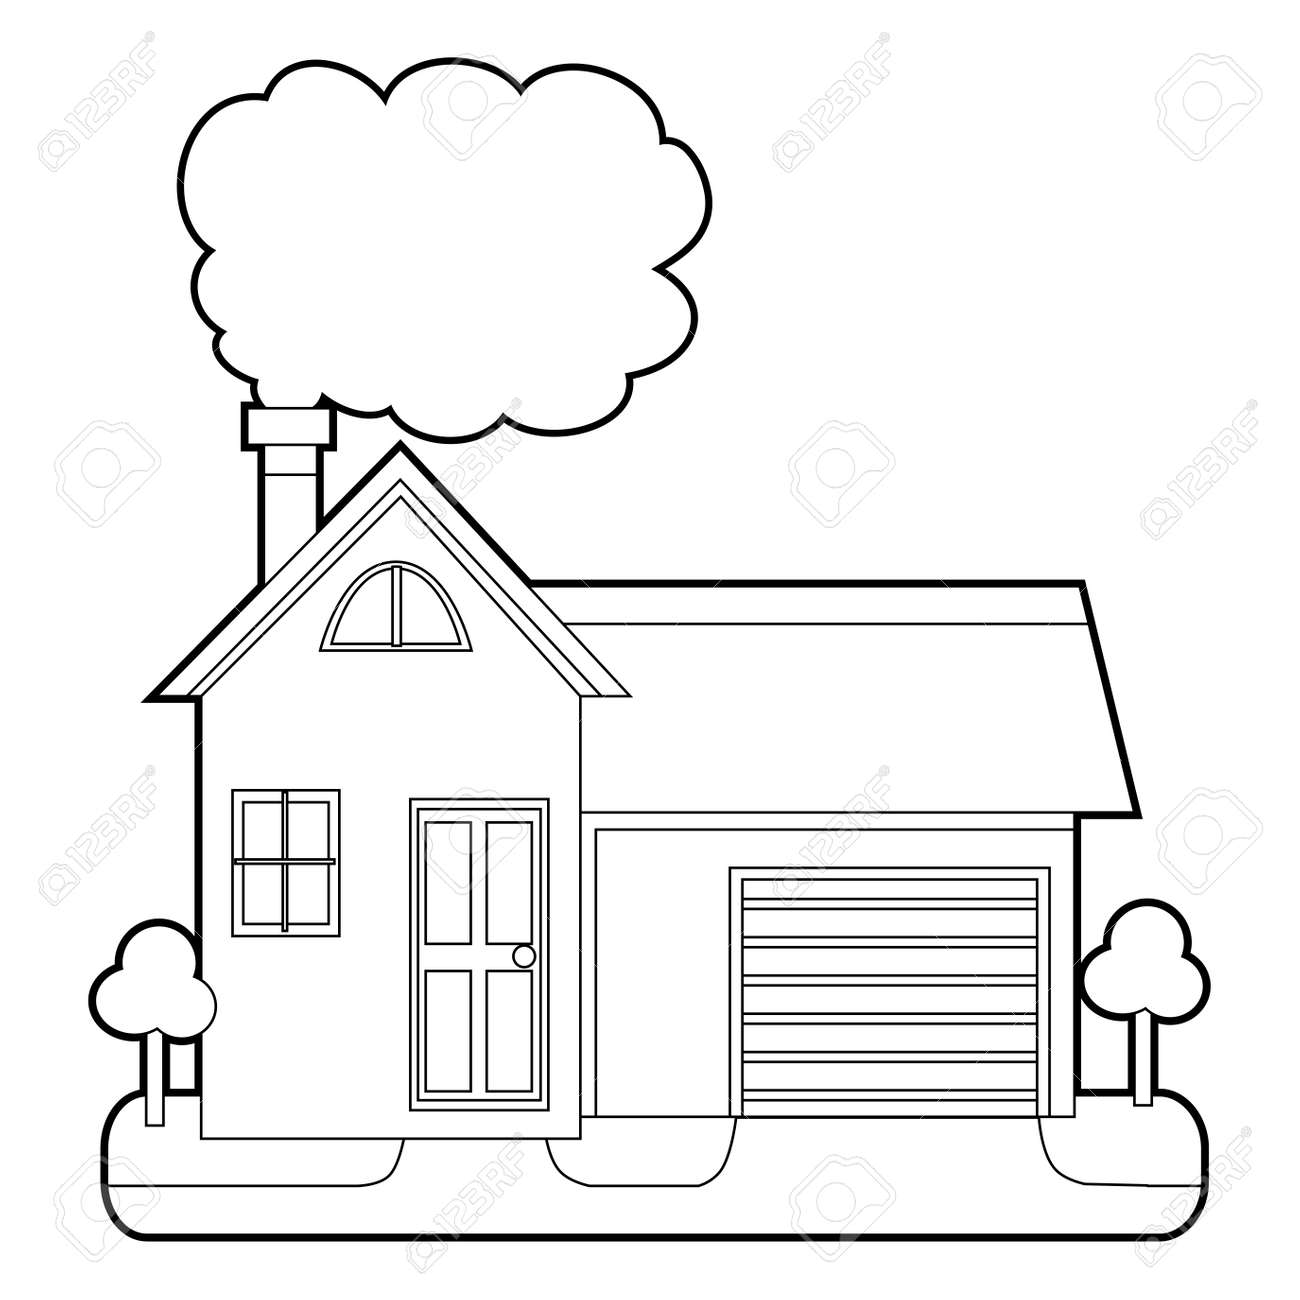 Coloring Book Outlined House With Chimney Smoke Royalty Free ...